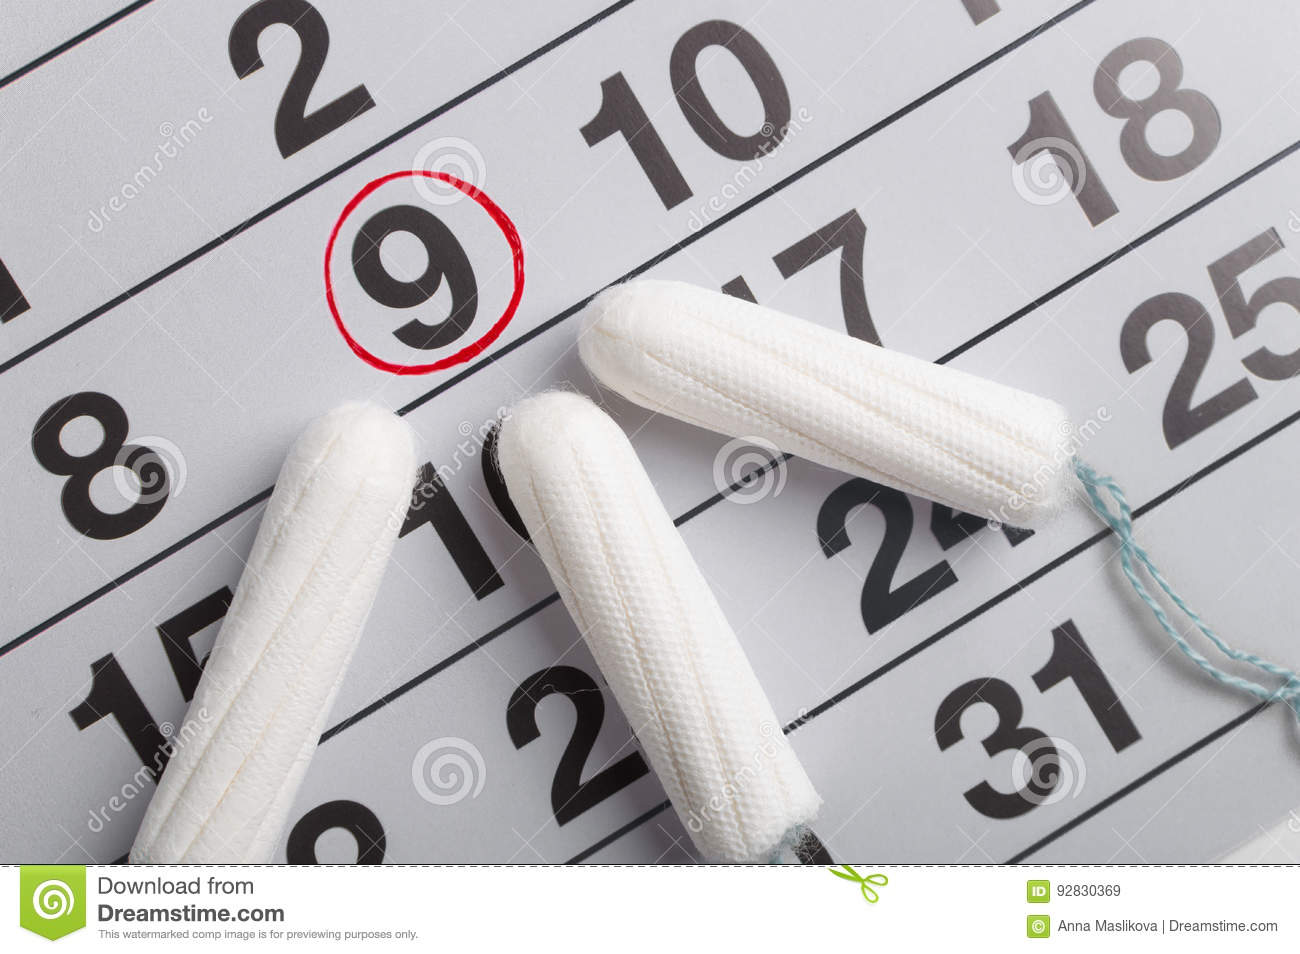 Menstrual calendar with tampons and pads. Menstruation cycle. Hygiene and protection